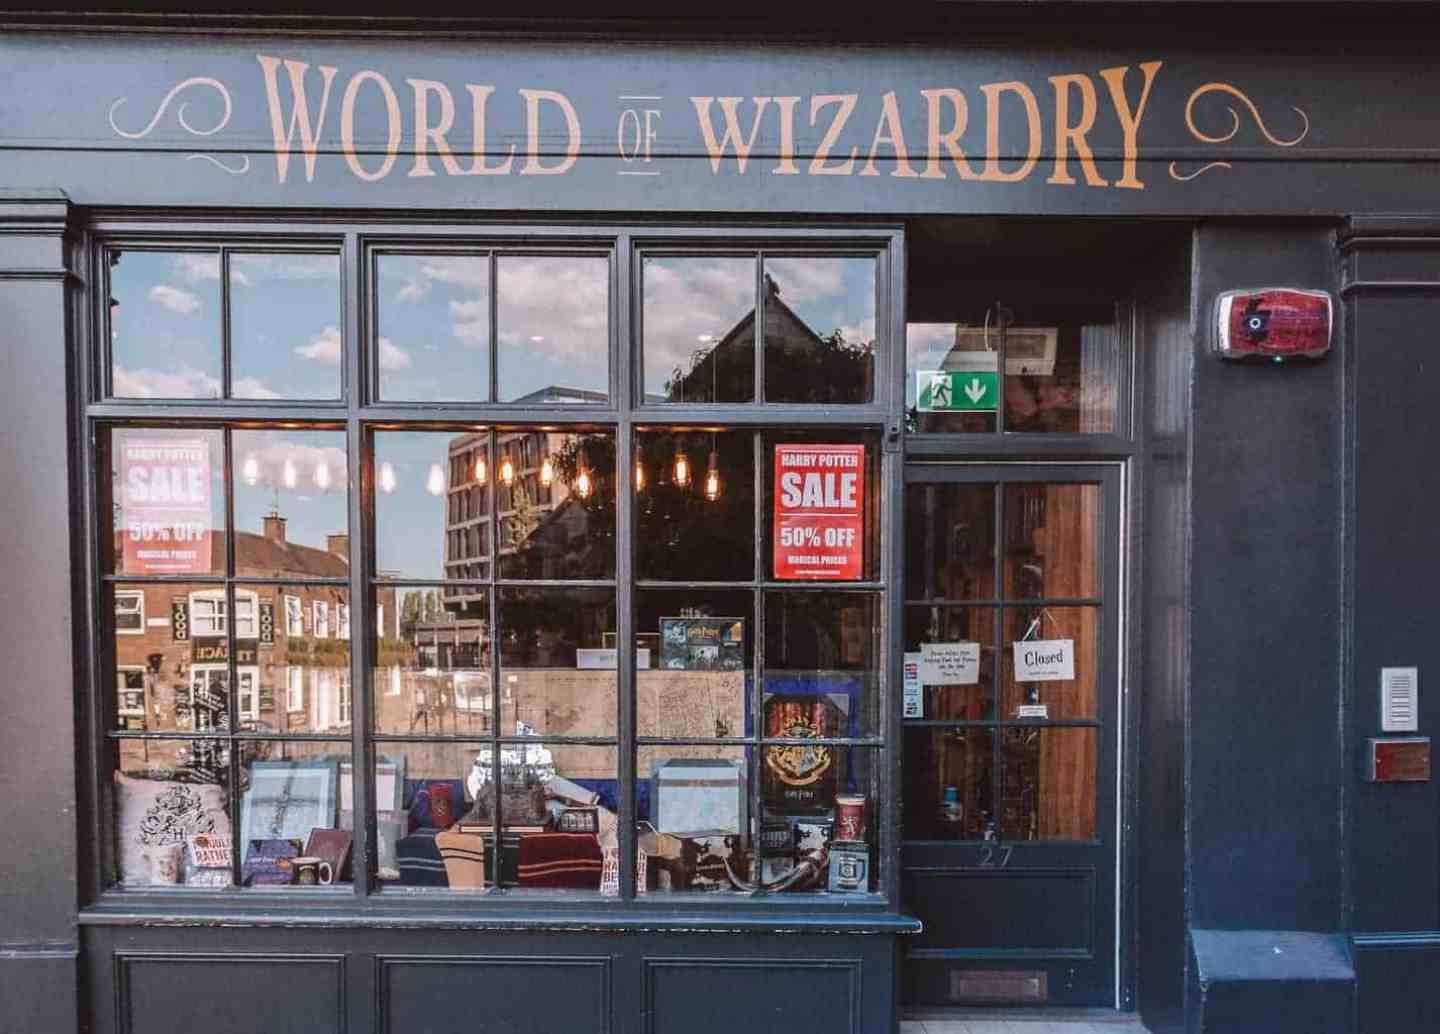 World of Wizardry - The Ultimate Guide to Harry Potter in York